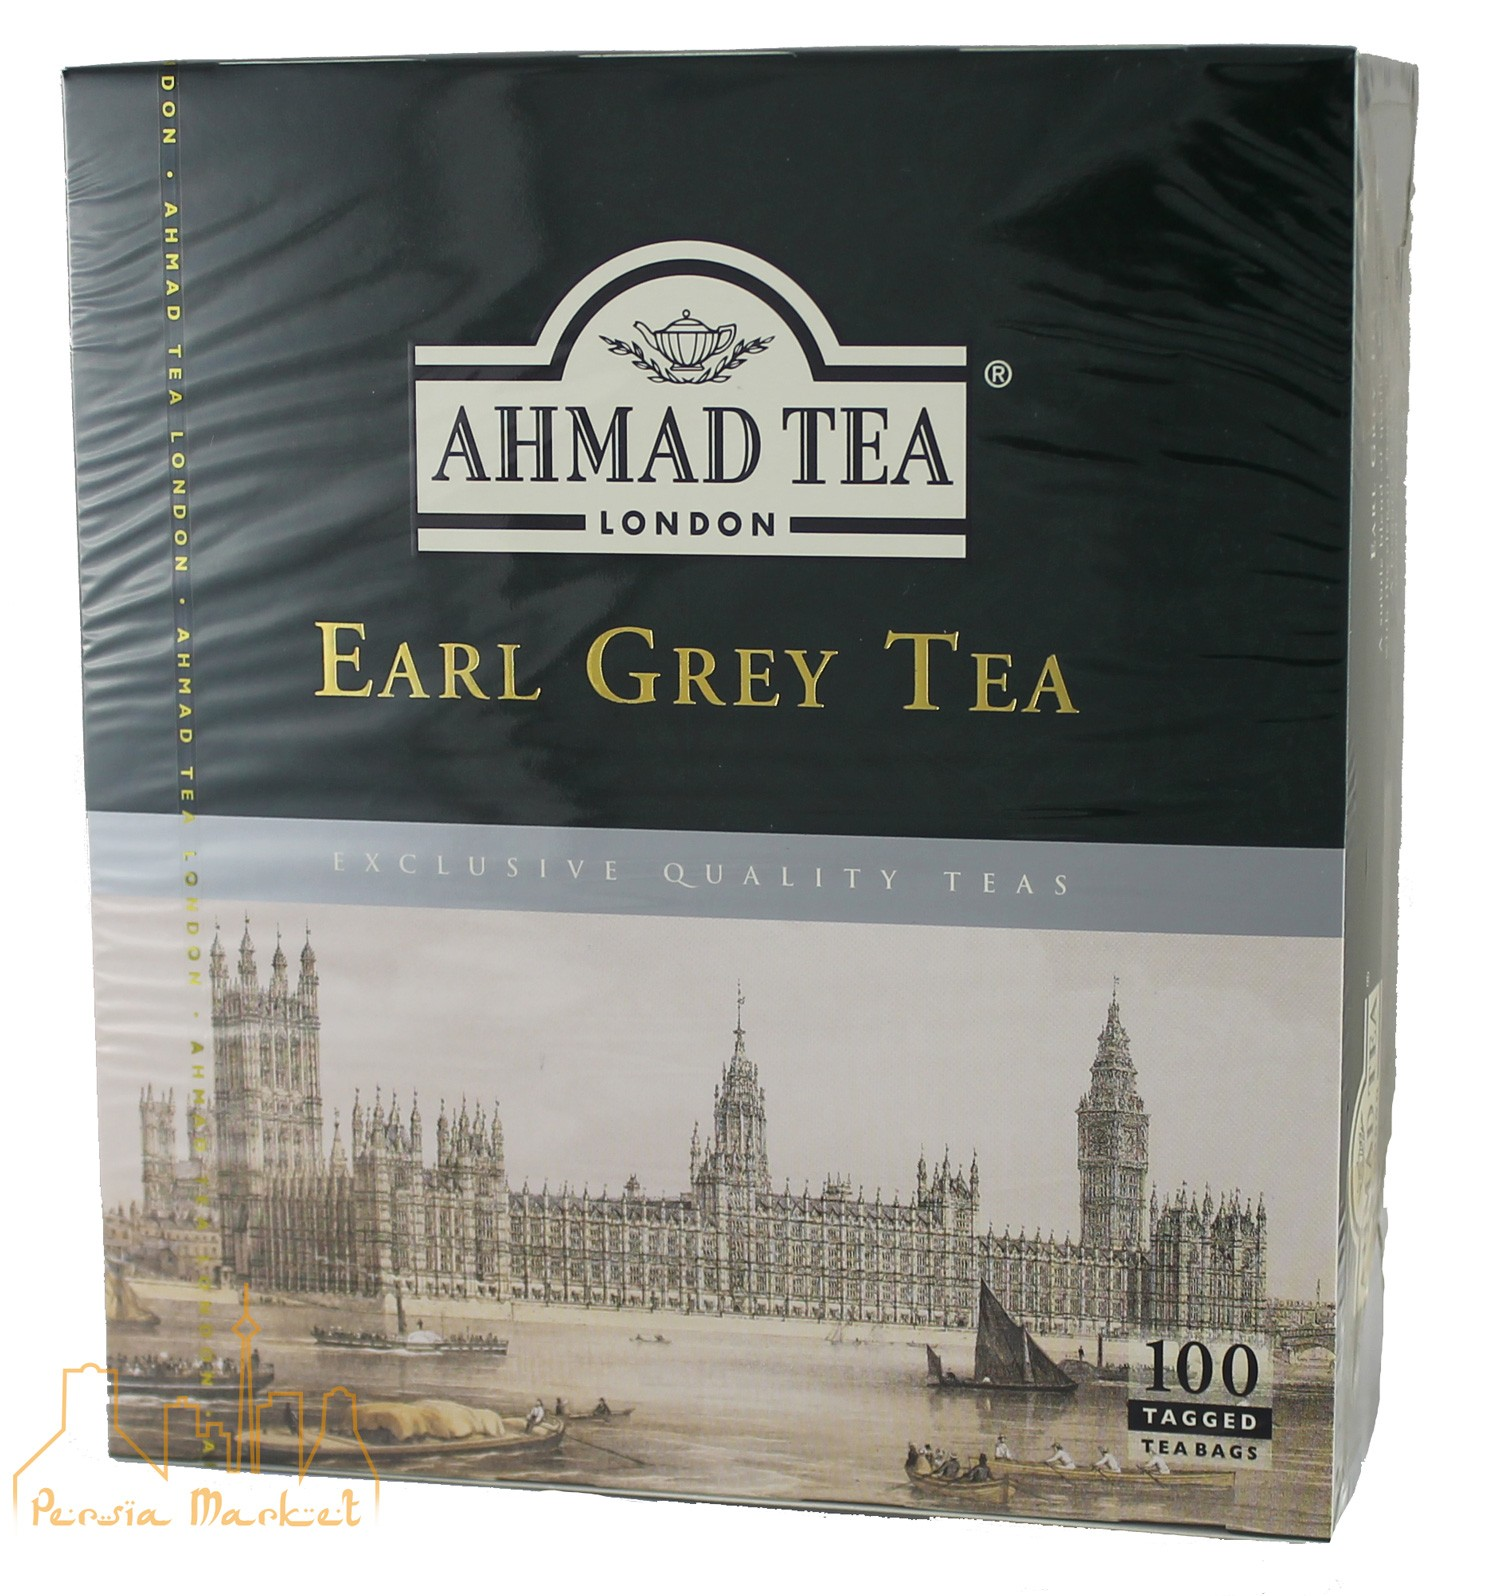 Ahmad Tea- Aromatic Earl Grey - 100 teabags